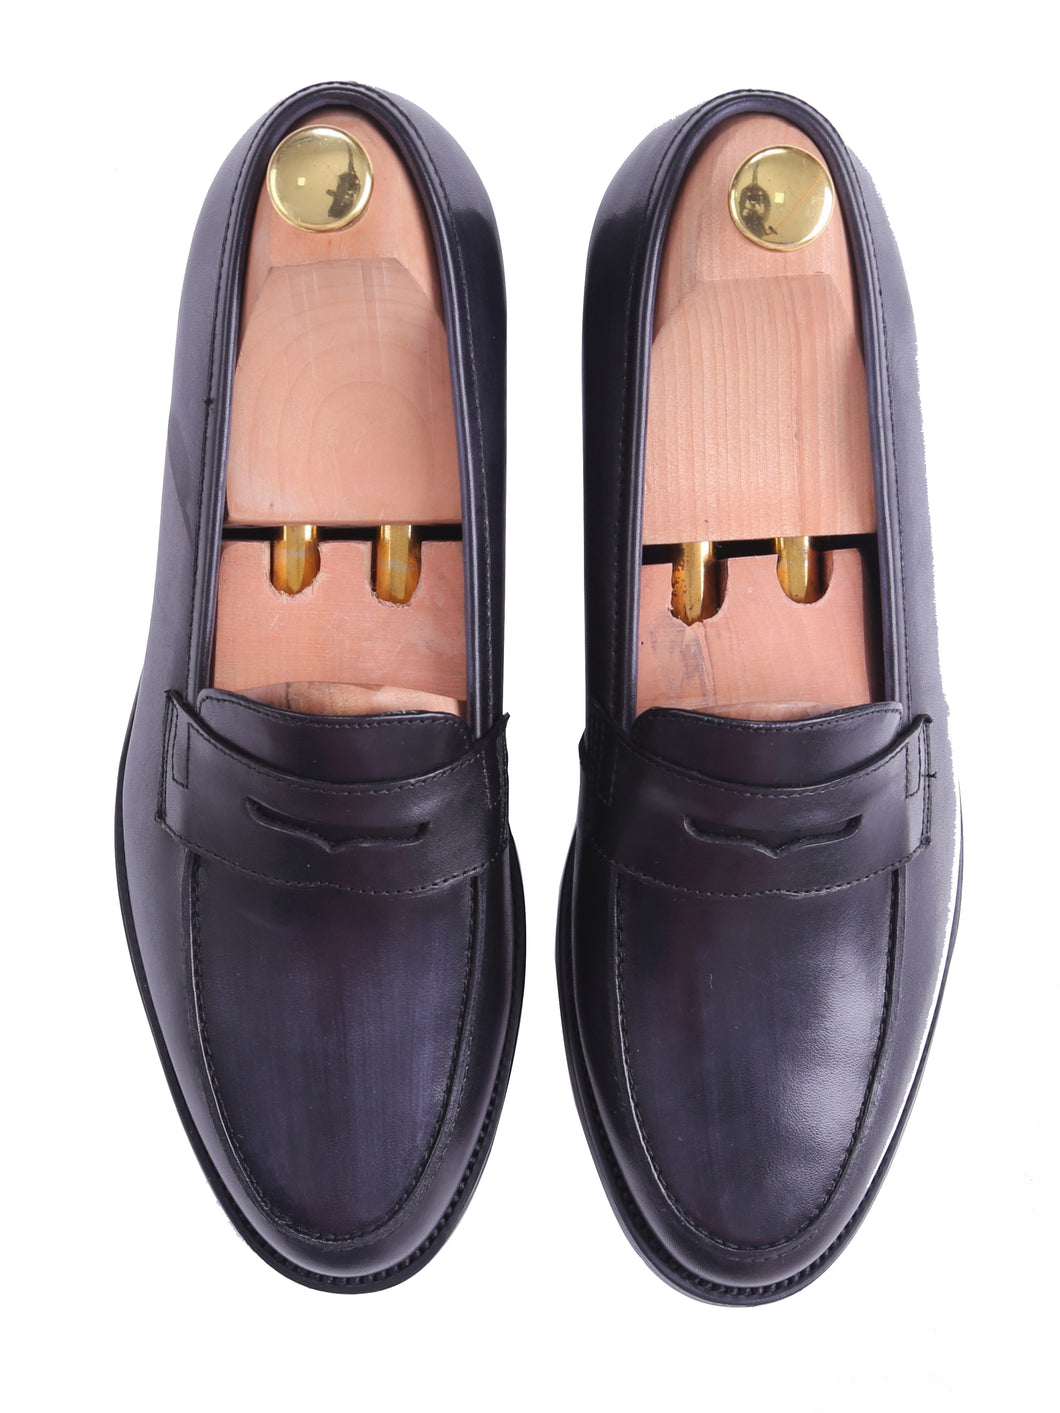 Penny Loafer - Black Grey (Hand Painted Patina)